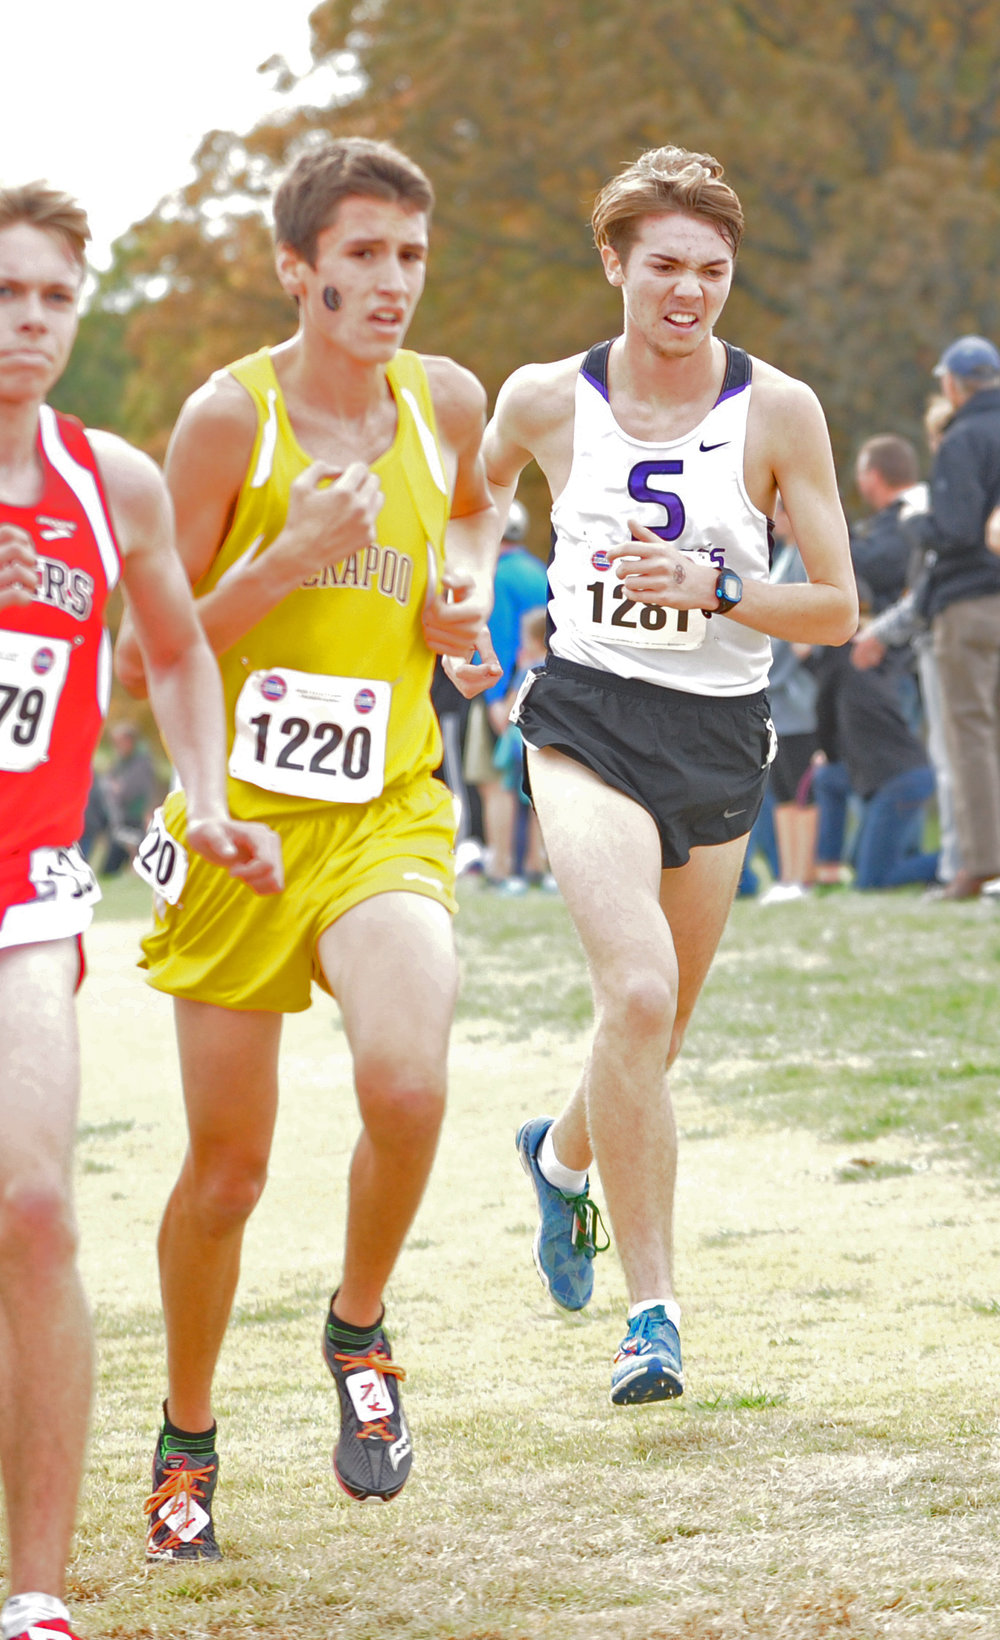 NICK INGRAM/Citizen photo Park Hill South senior Eli Guzman runs in the Class 4 Missouri State Cross Country Championships on Saturday, Nov. 4 at Oak Hills Golf Center in Jefferson City, Mo.